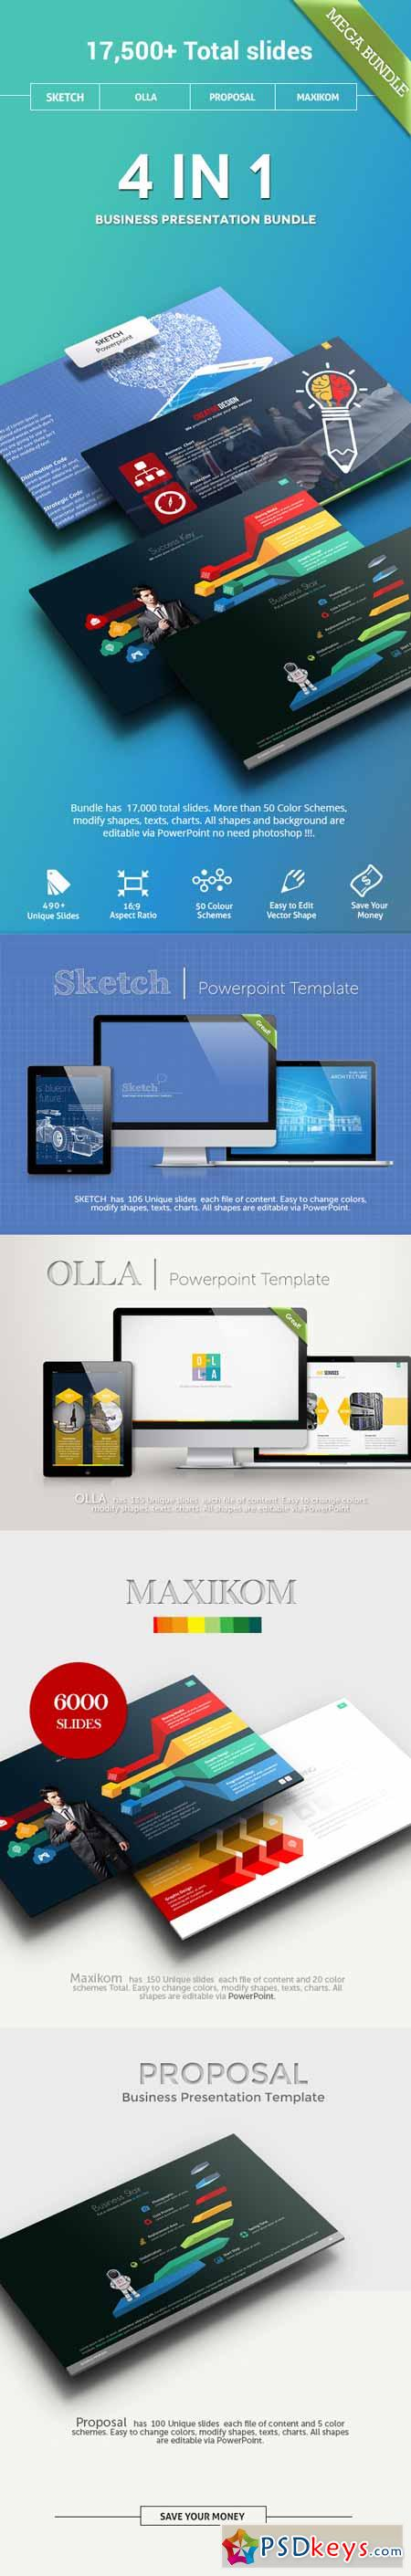 4 in 1 mega bundle powerpoint 11377265 free download for Powerpoint templates torrents